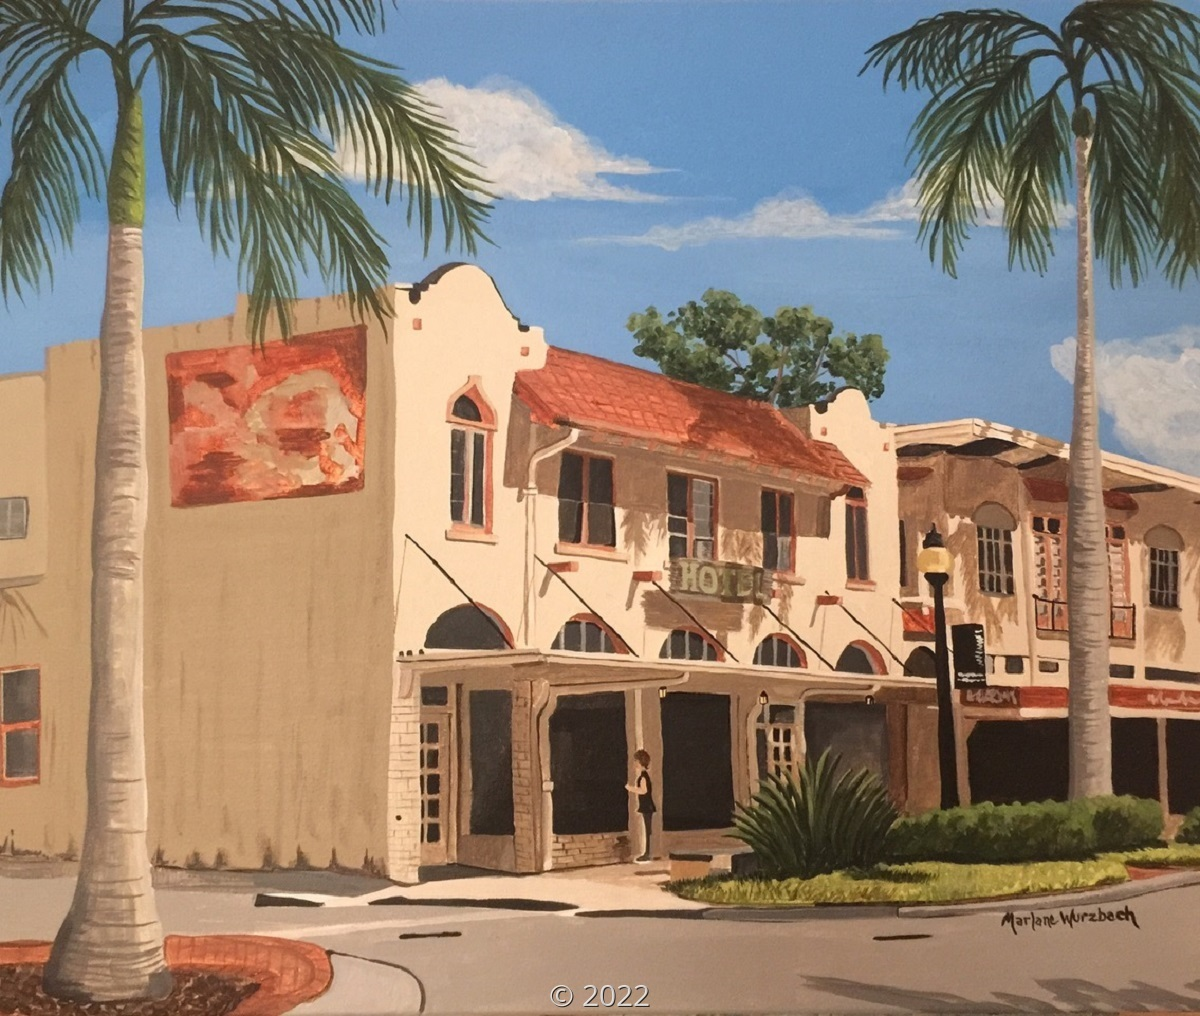 'Preserving Sarasota's DeMarcay Hotel' by Wurzbach (large view)